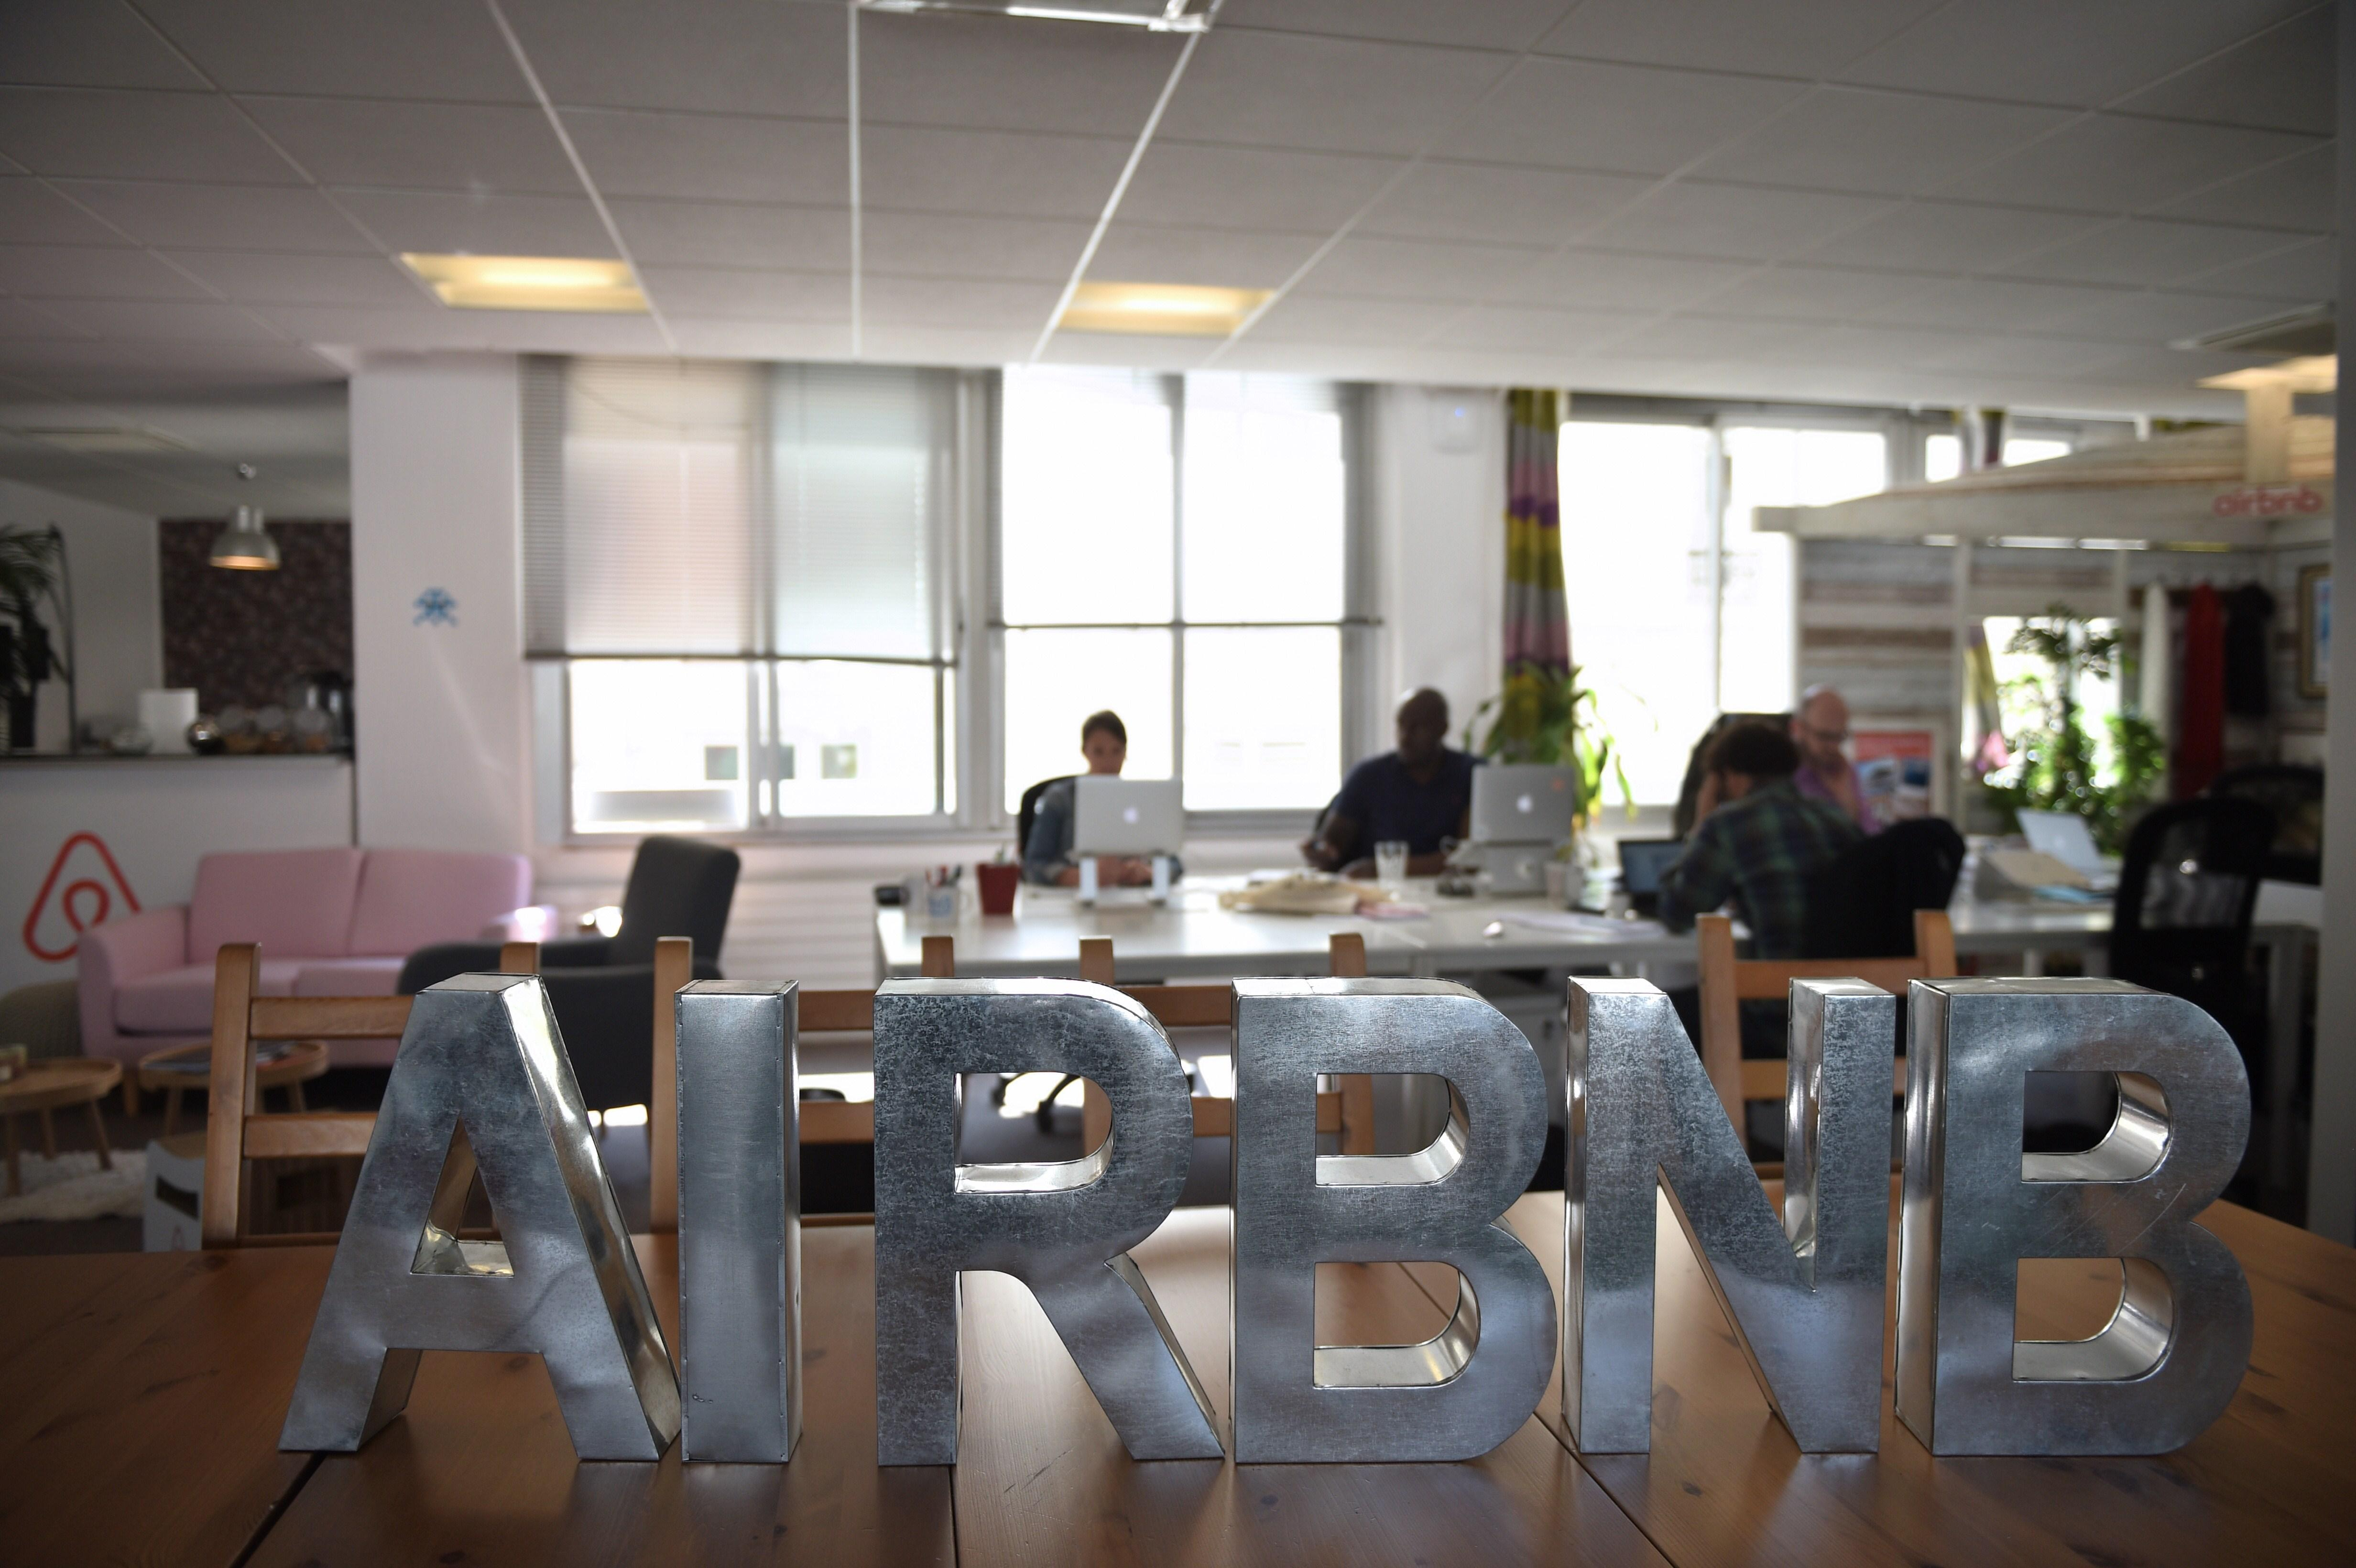 airbnb funding